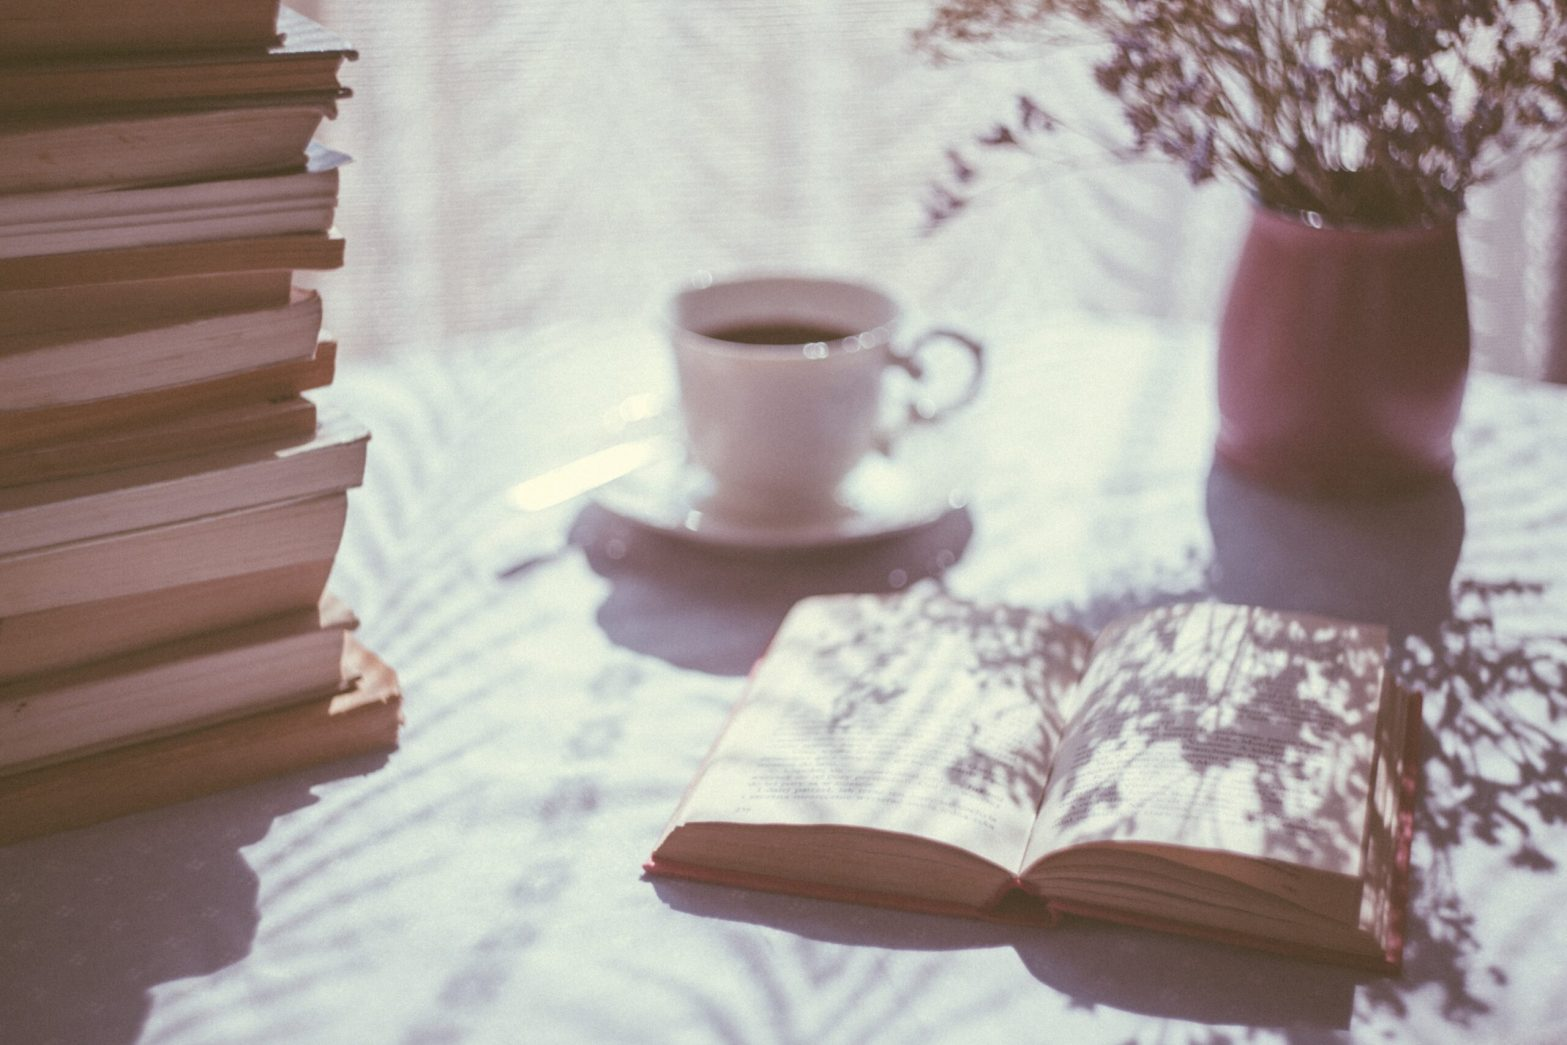 Book open on table with coffee behind it, stack of books to the left